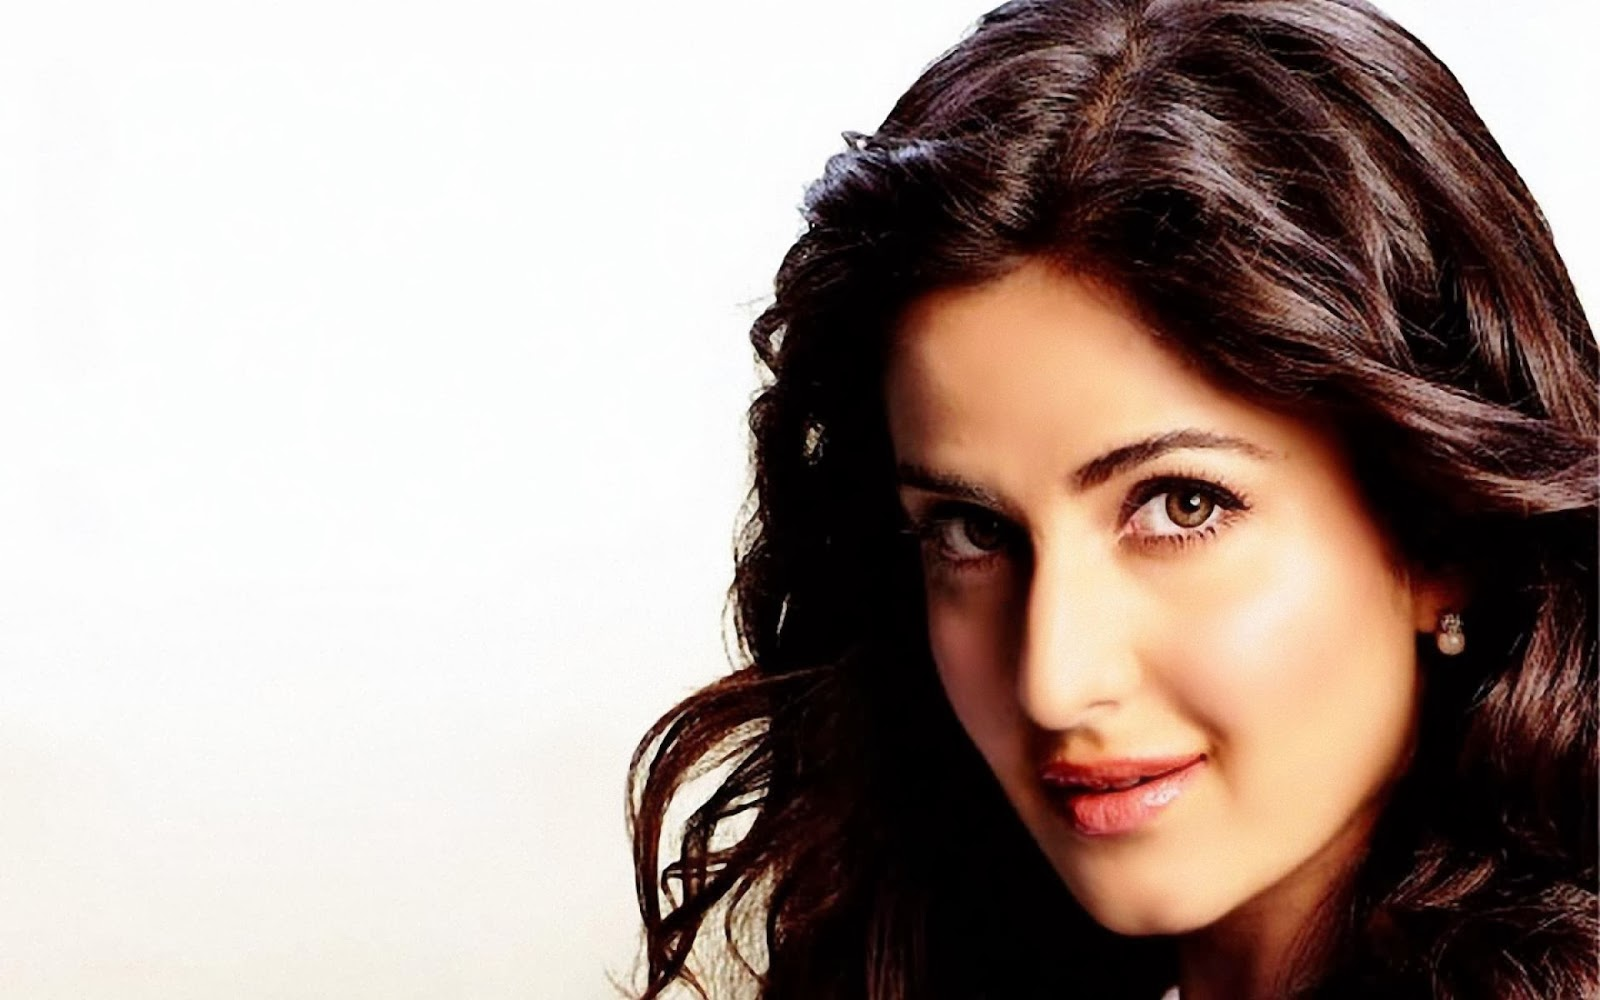 hindi actress katrina kaif latest news and wallpapers - everything 4u